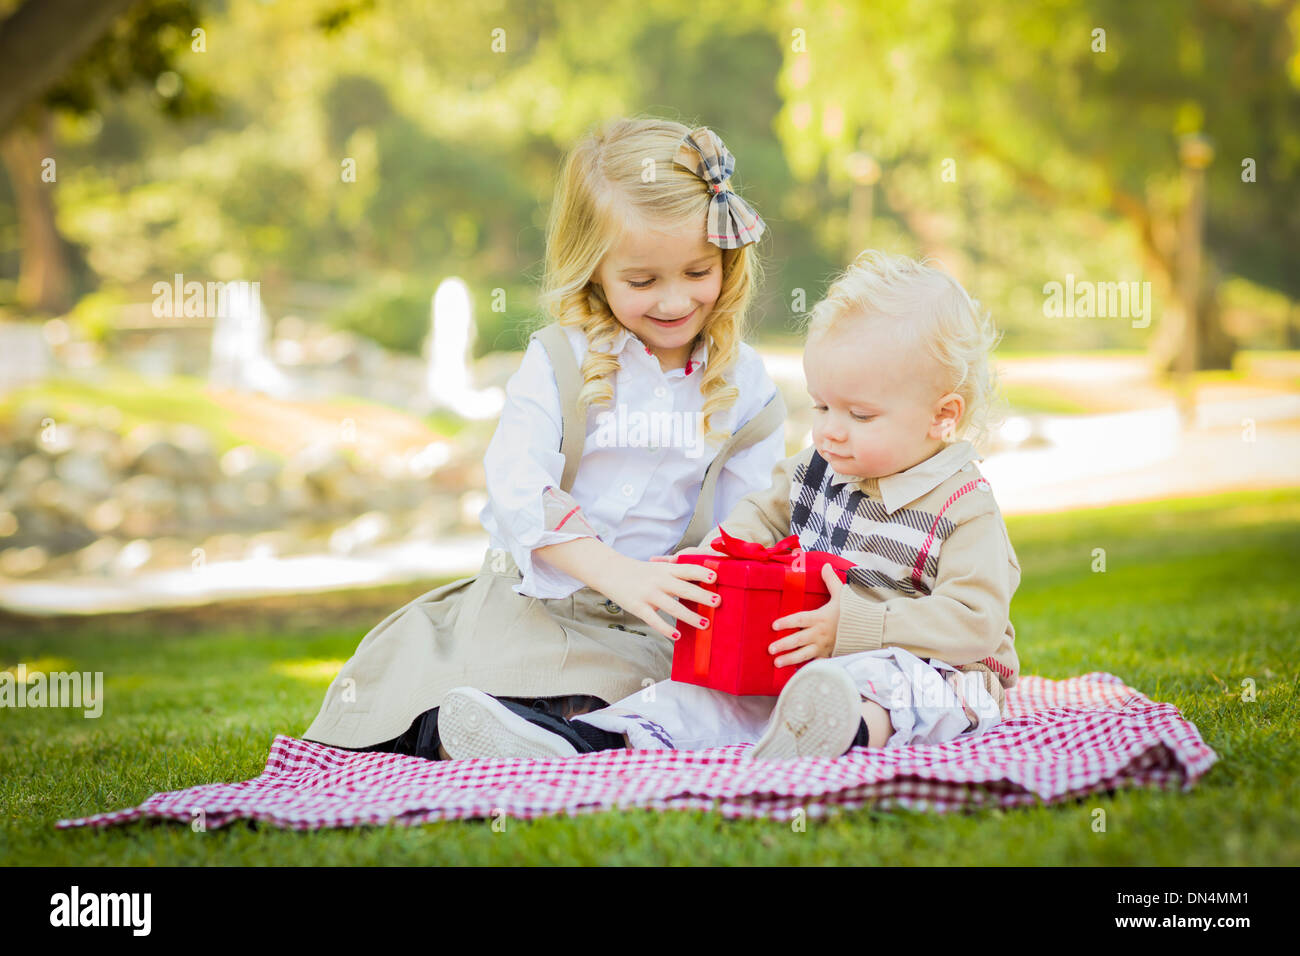 Sweet Little Girl Gives Her Baby Brother A Wrapped Gift on a Picnic Blanket Outdoors at the Park. - Stock Image